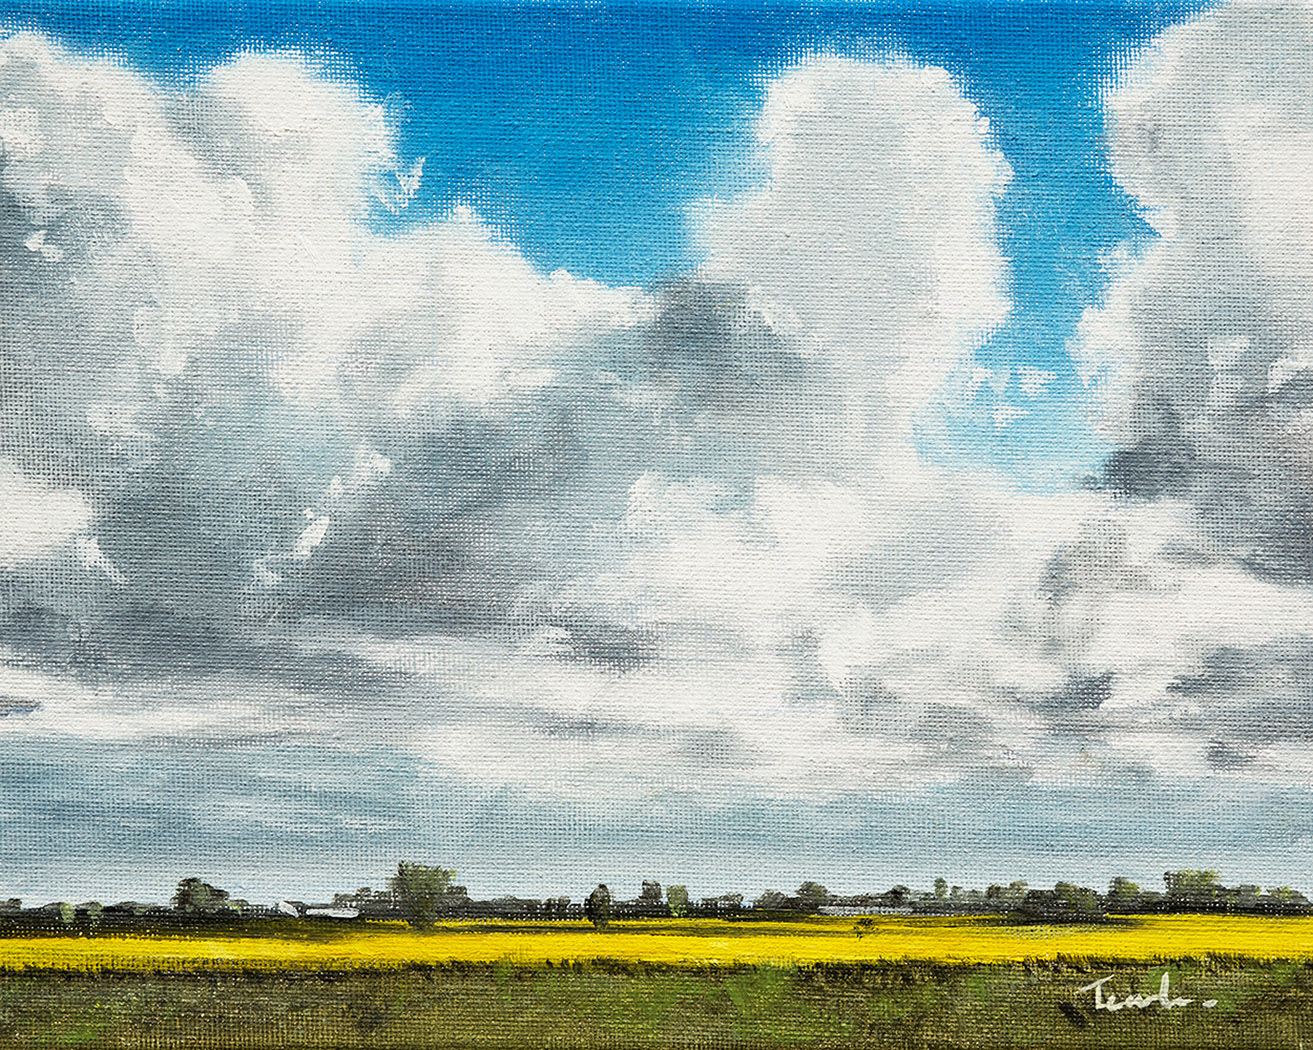 Fenland Sky over Bottom Fen Farm - Nick Tearle Fenland Artist